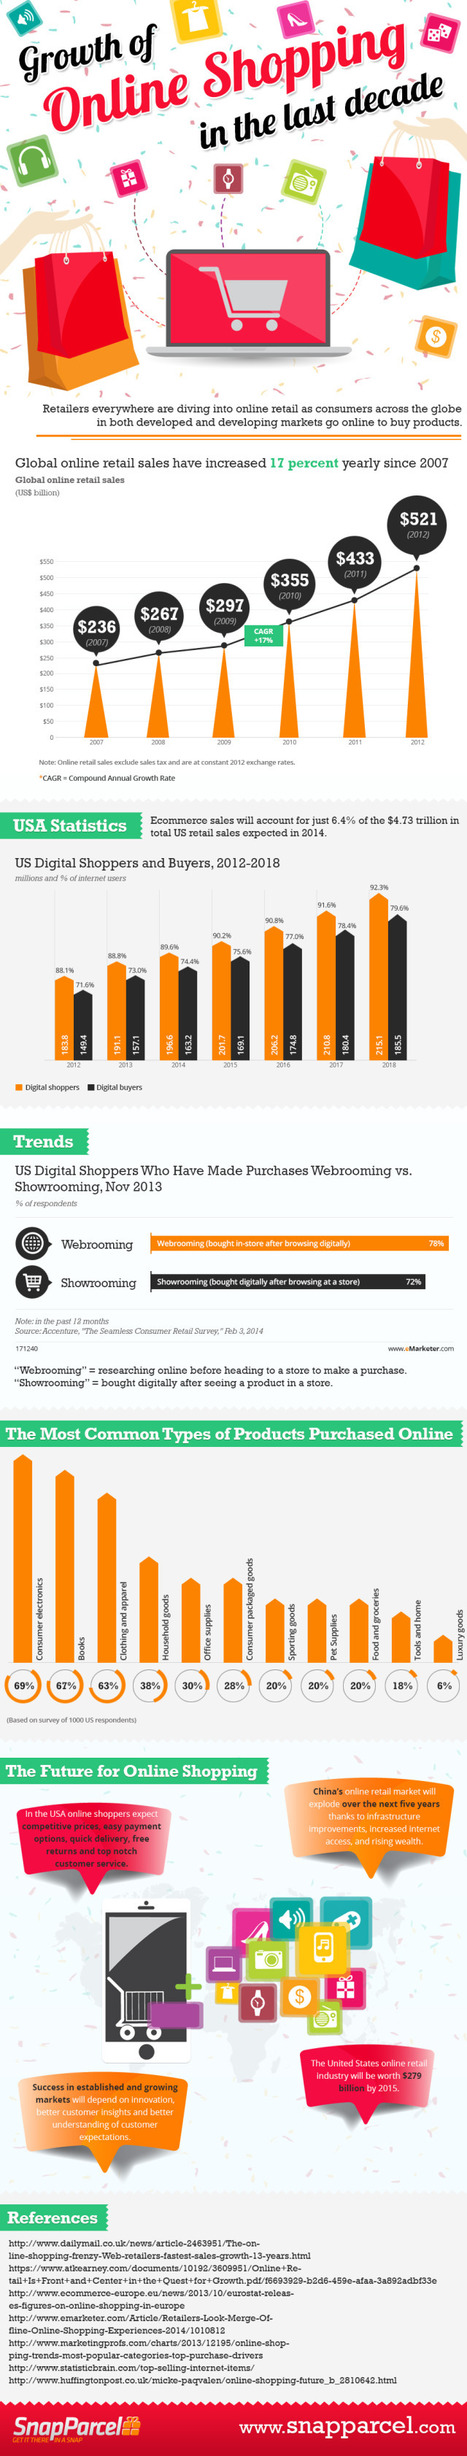 Retailers Beware: Online Shopping Trends Are Accelerating - Marketing Technology Blog | Consumer Behavior in Digital Environments | Scoop.it